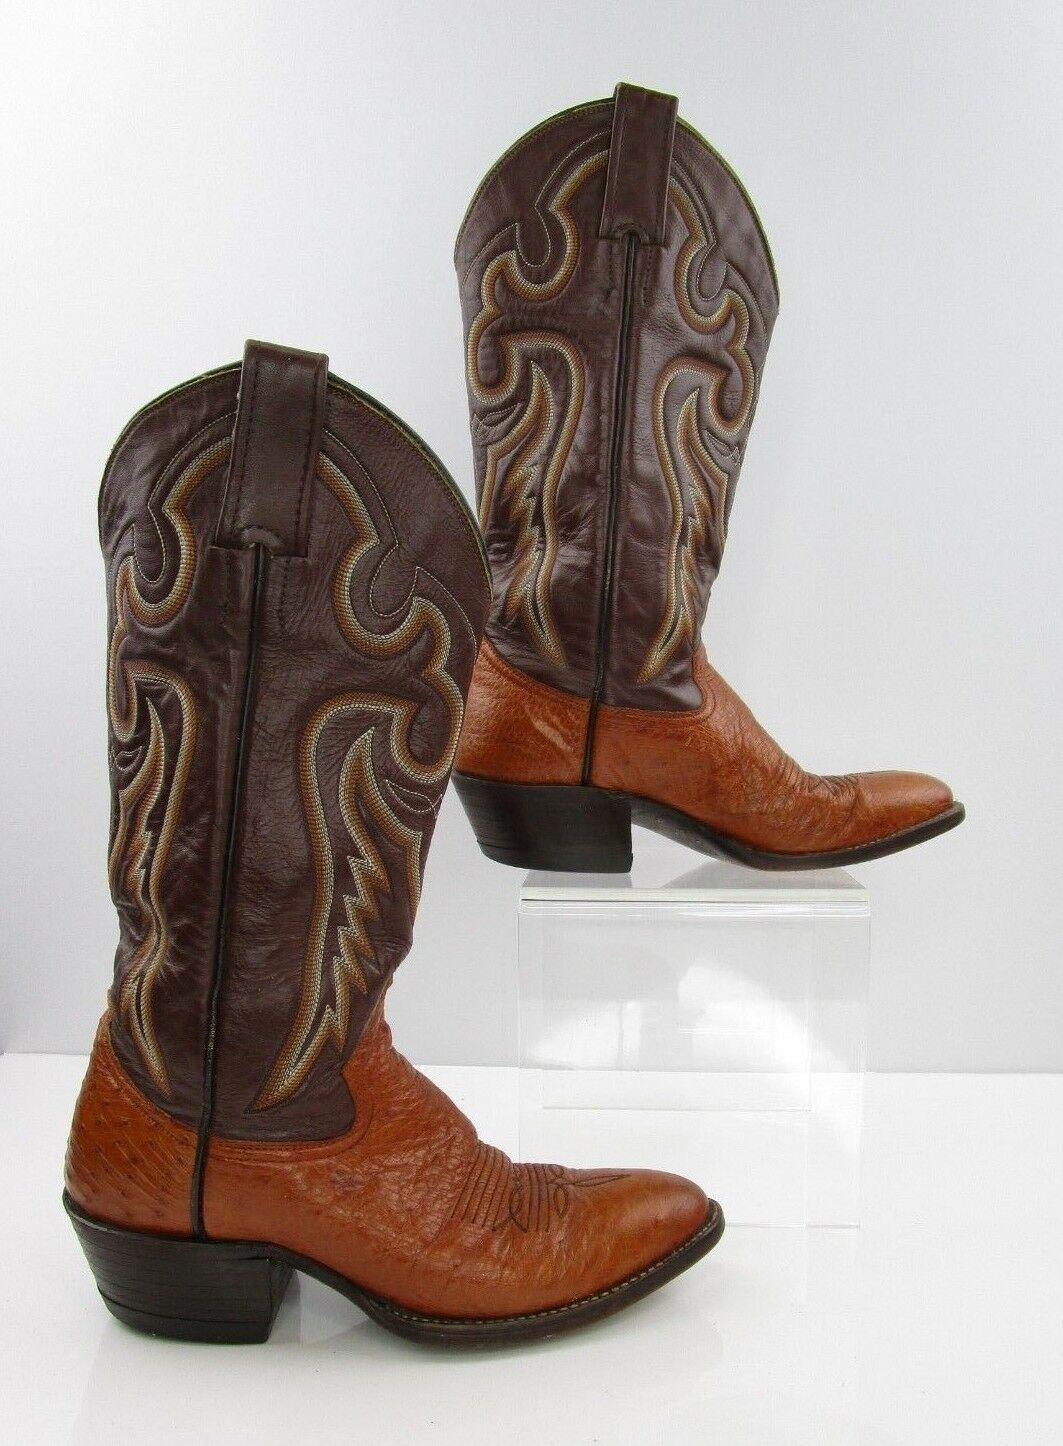 Ladies Cowboy ABC Boots Brown Smooth Ostrich Leather Cowboy Ladies Western Boots Size: 6 5e2906